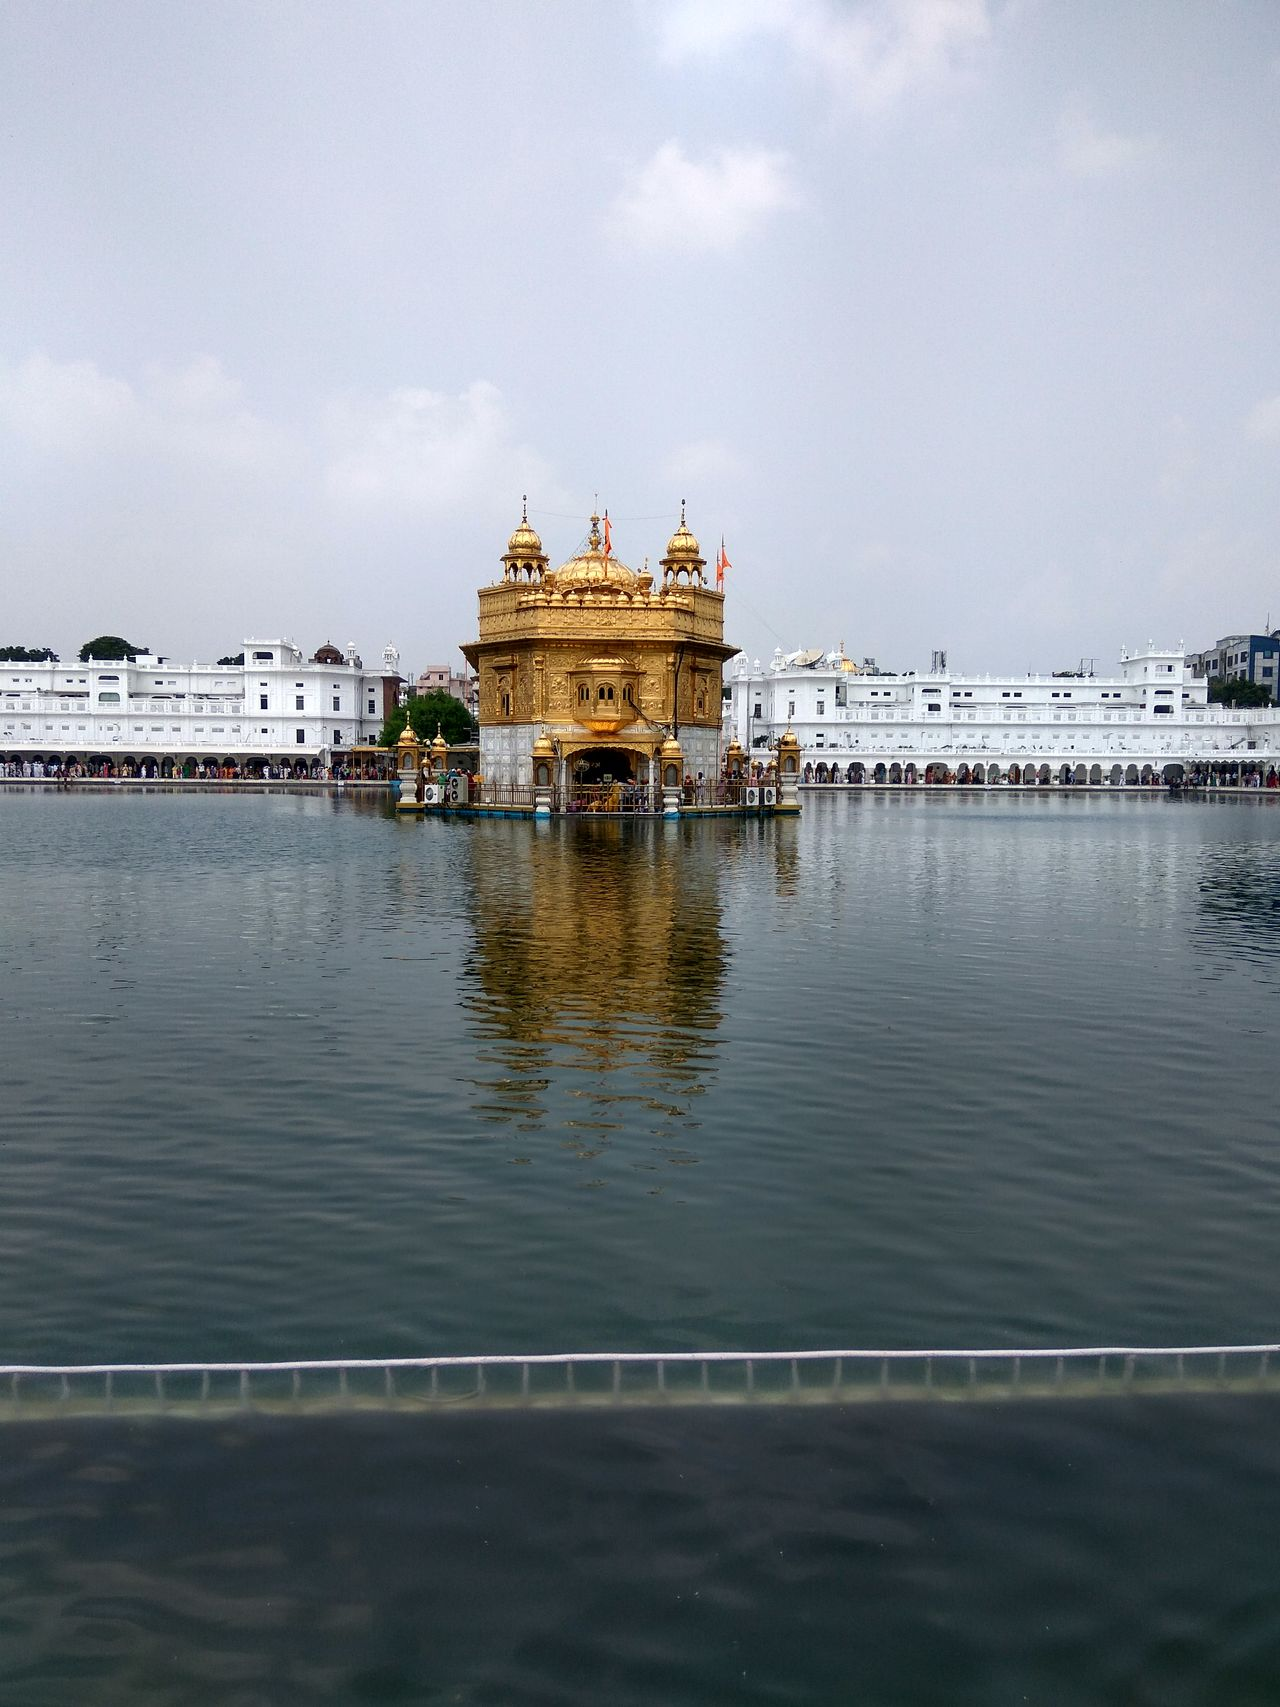 Golden Temple Golden Temple, Amritsar Reflection Water Architecture Travel Sky Cloud - Sky Government Politics And Government Gold Travel Destinations Built Structure Gold Colored Outdoors City Business Finance And Industry No People Royalty Nature Day